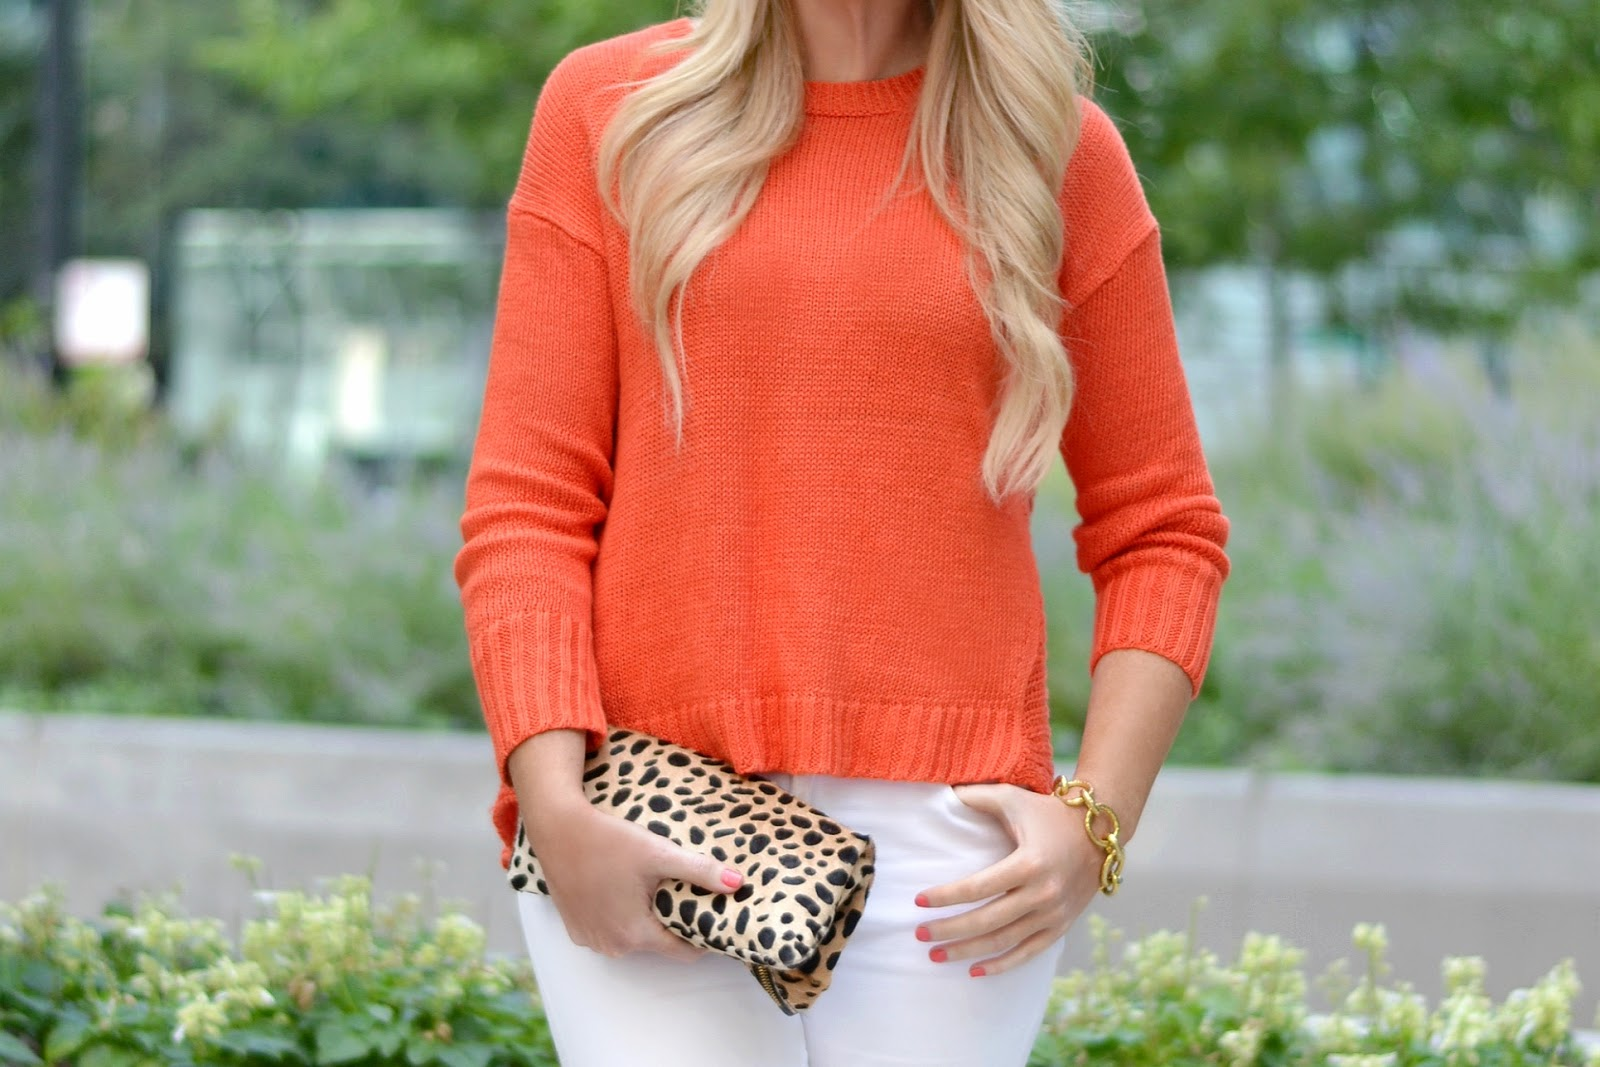 jcrew sweater with clare v leopard clutch